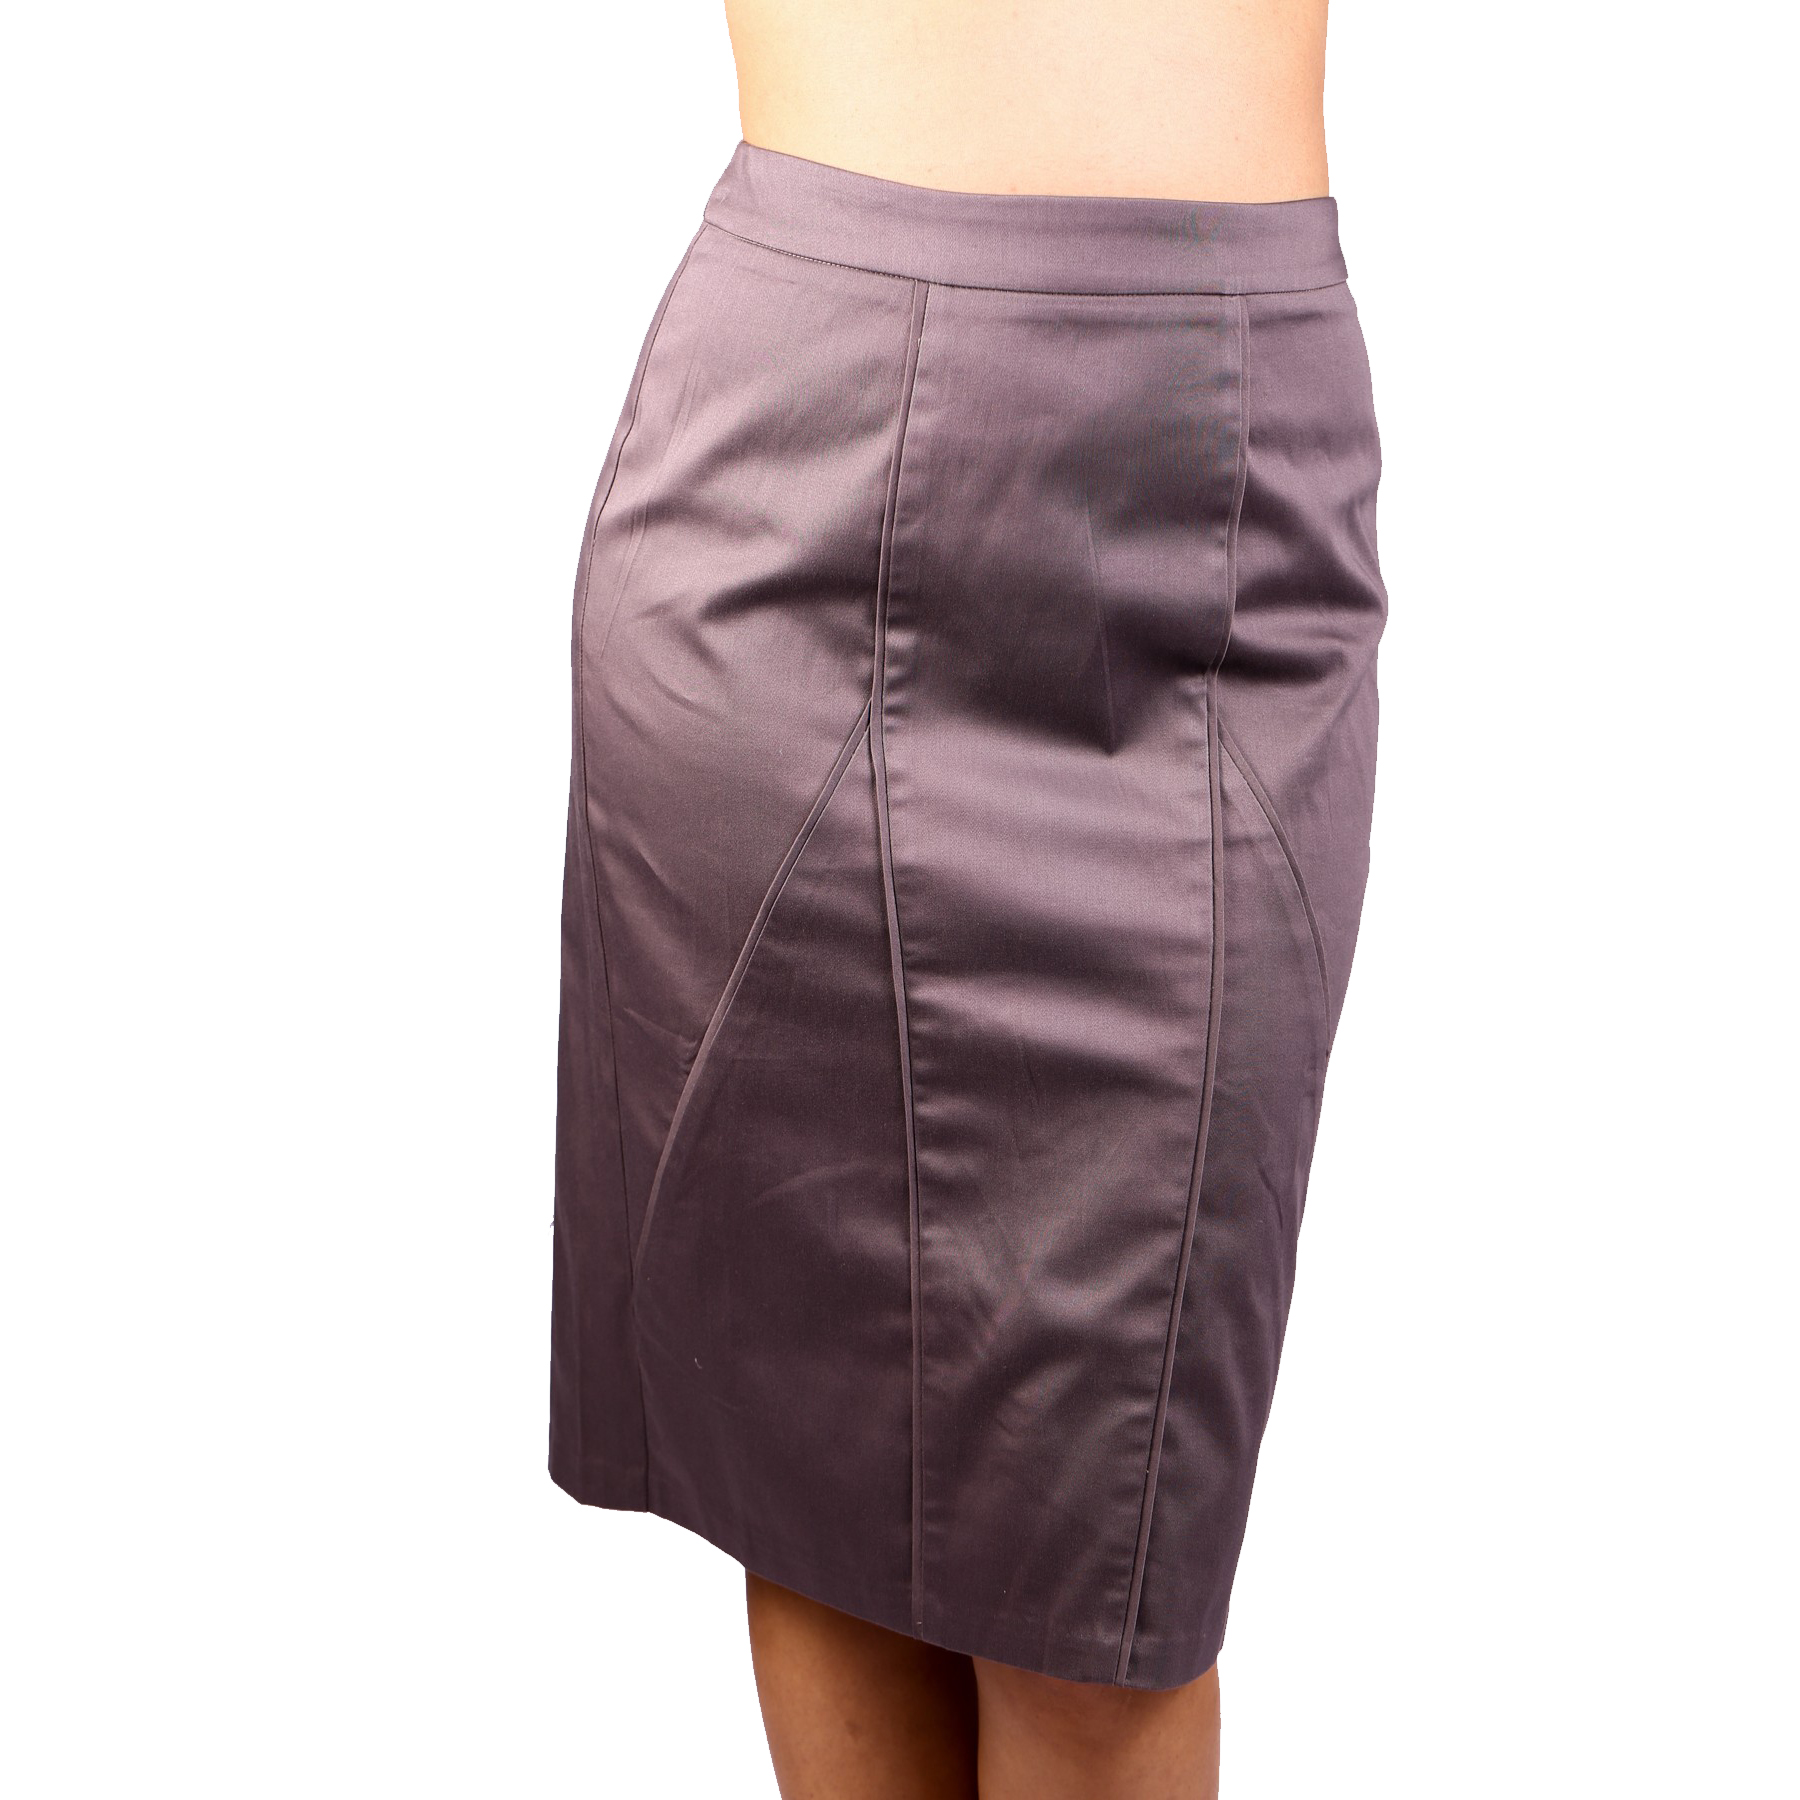 Metalic Silver Skirt AVSK100063 large 1